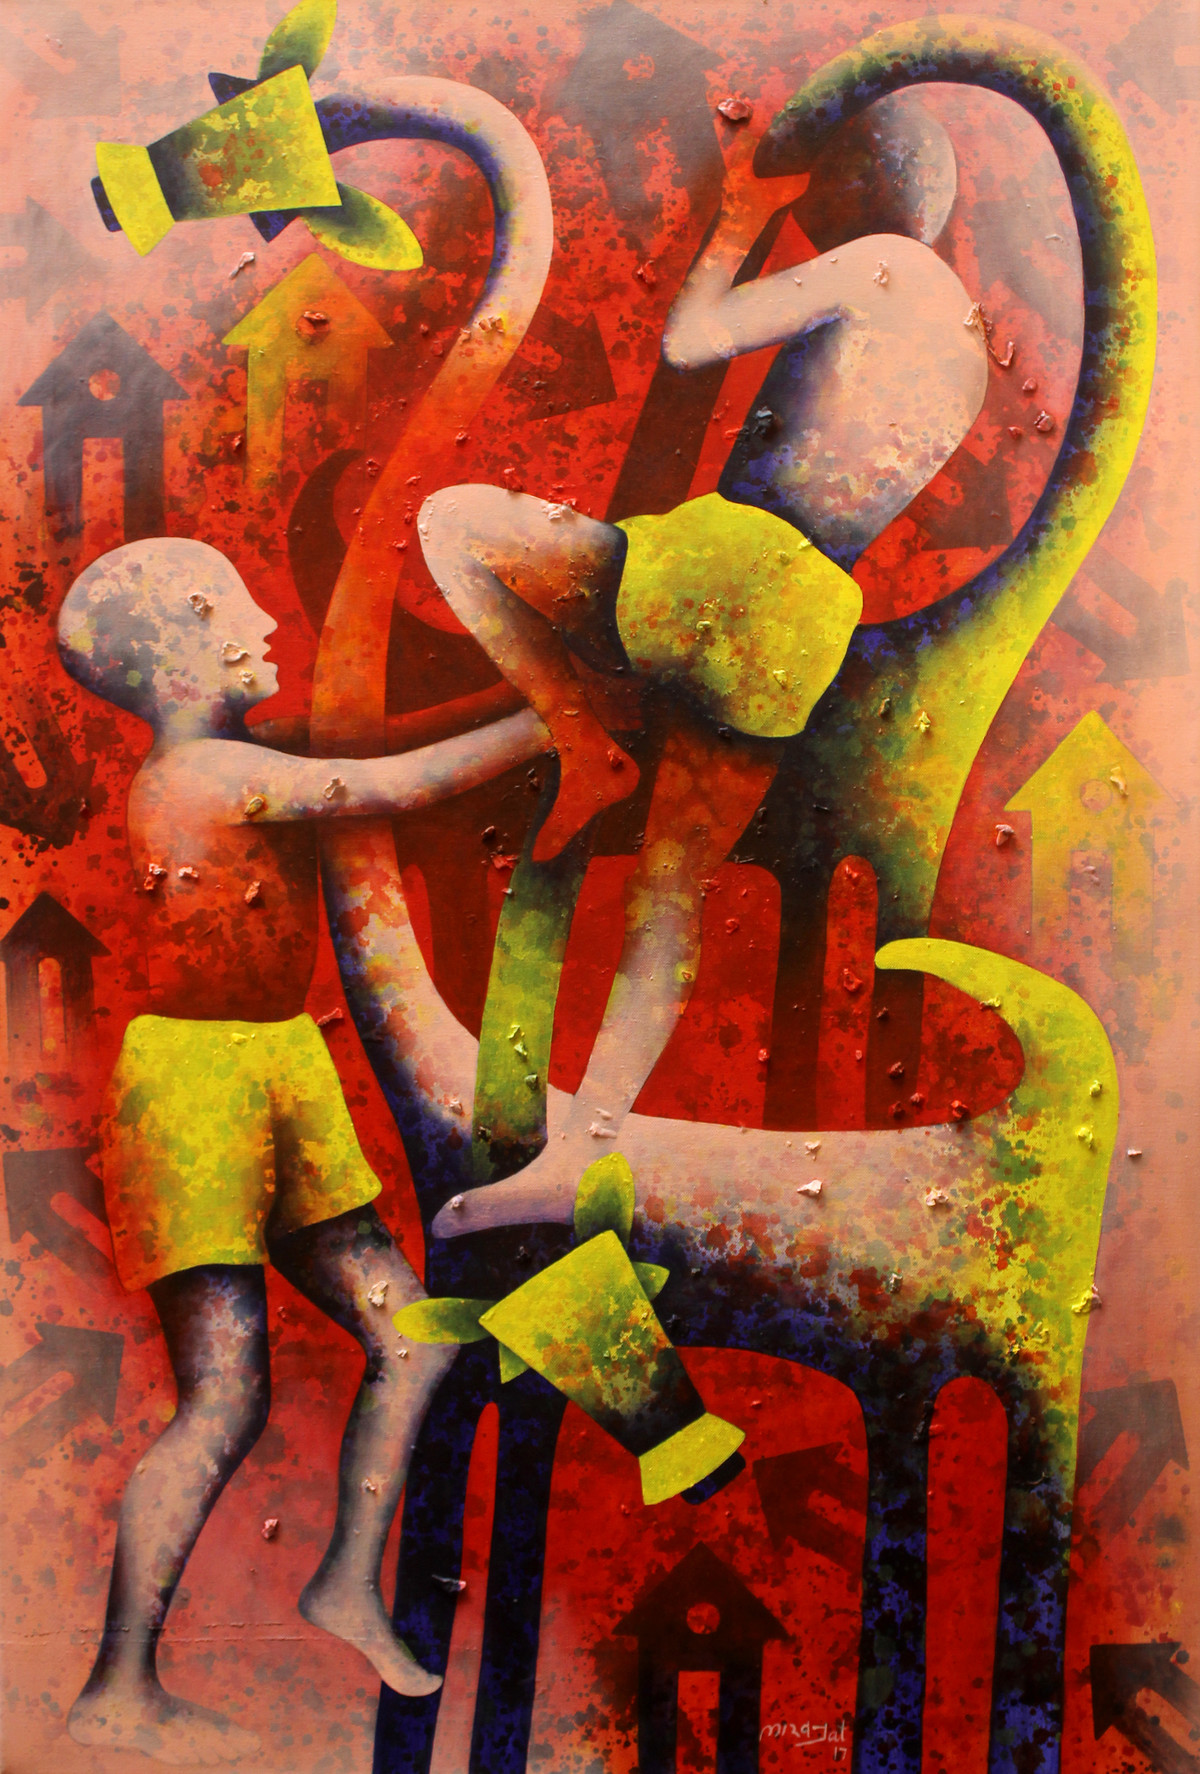 athkheliya by Lakhan Singh Jat, Expressionism Painting, Acrylic on Canvas, Brown color